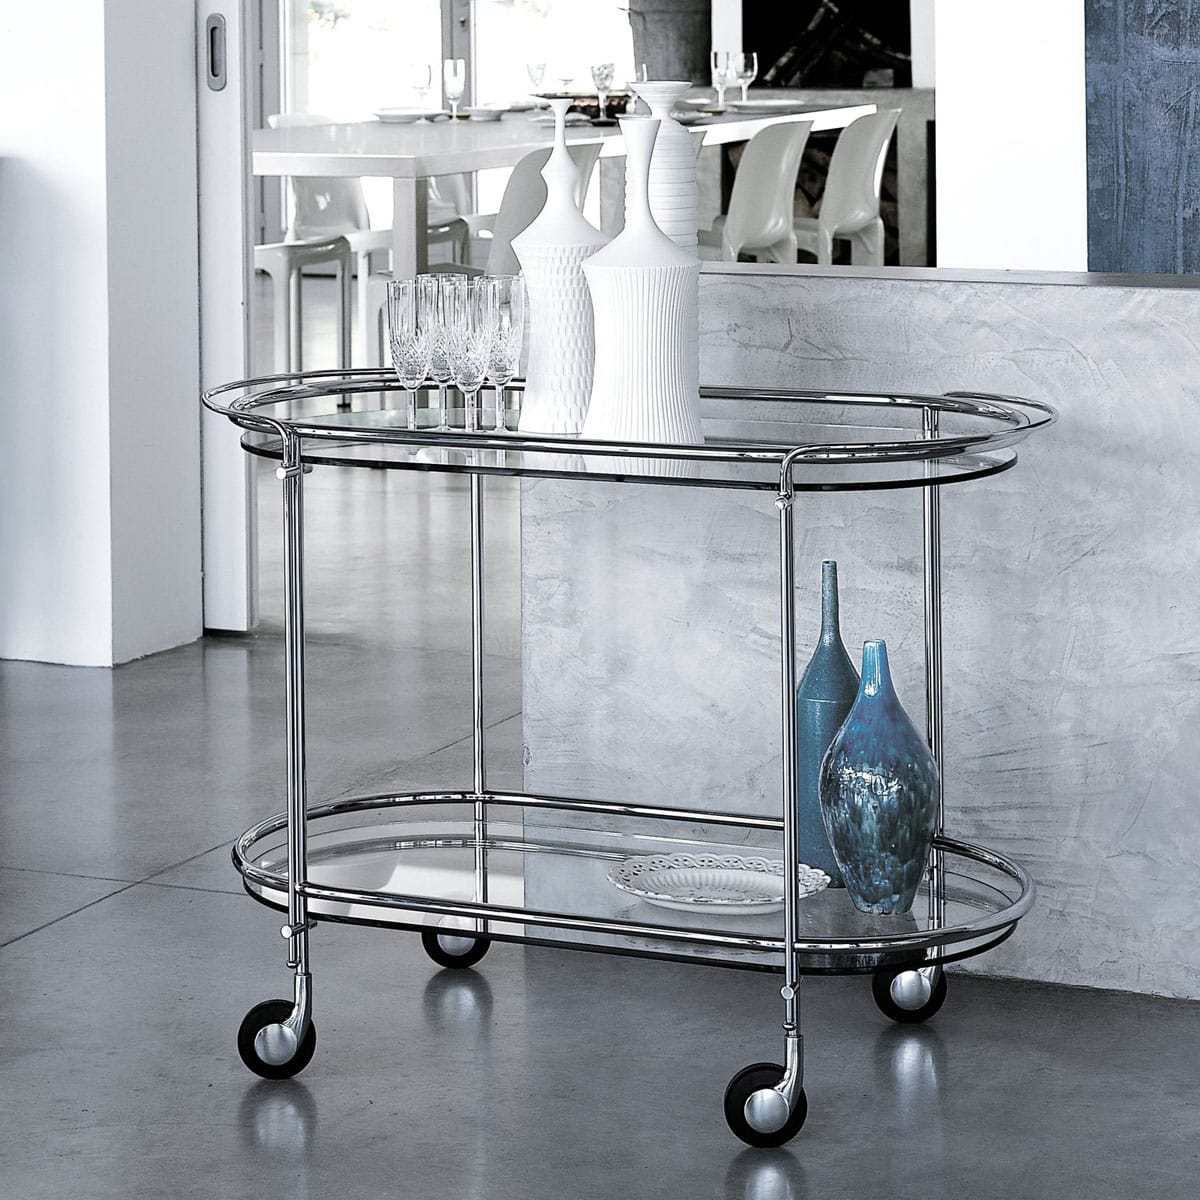 Gallotti & Radice Riki Drinks Trolley